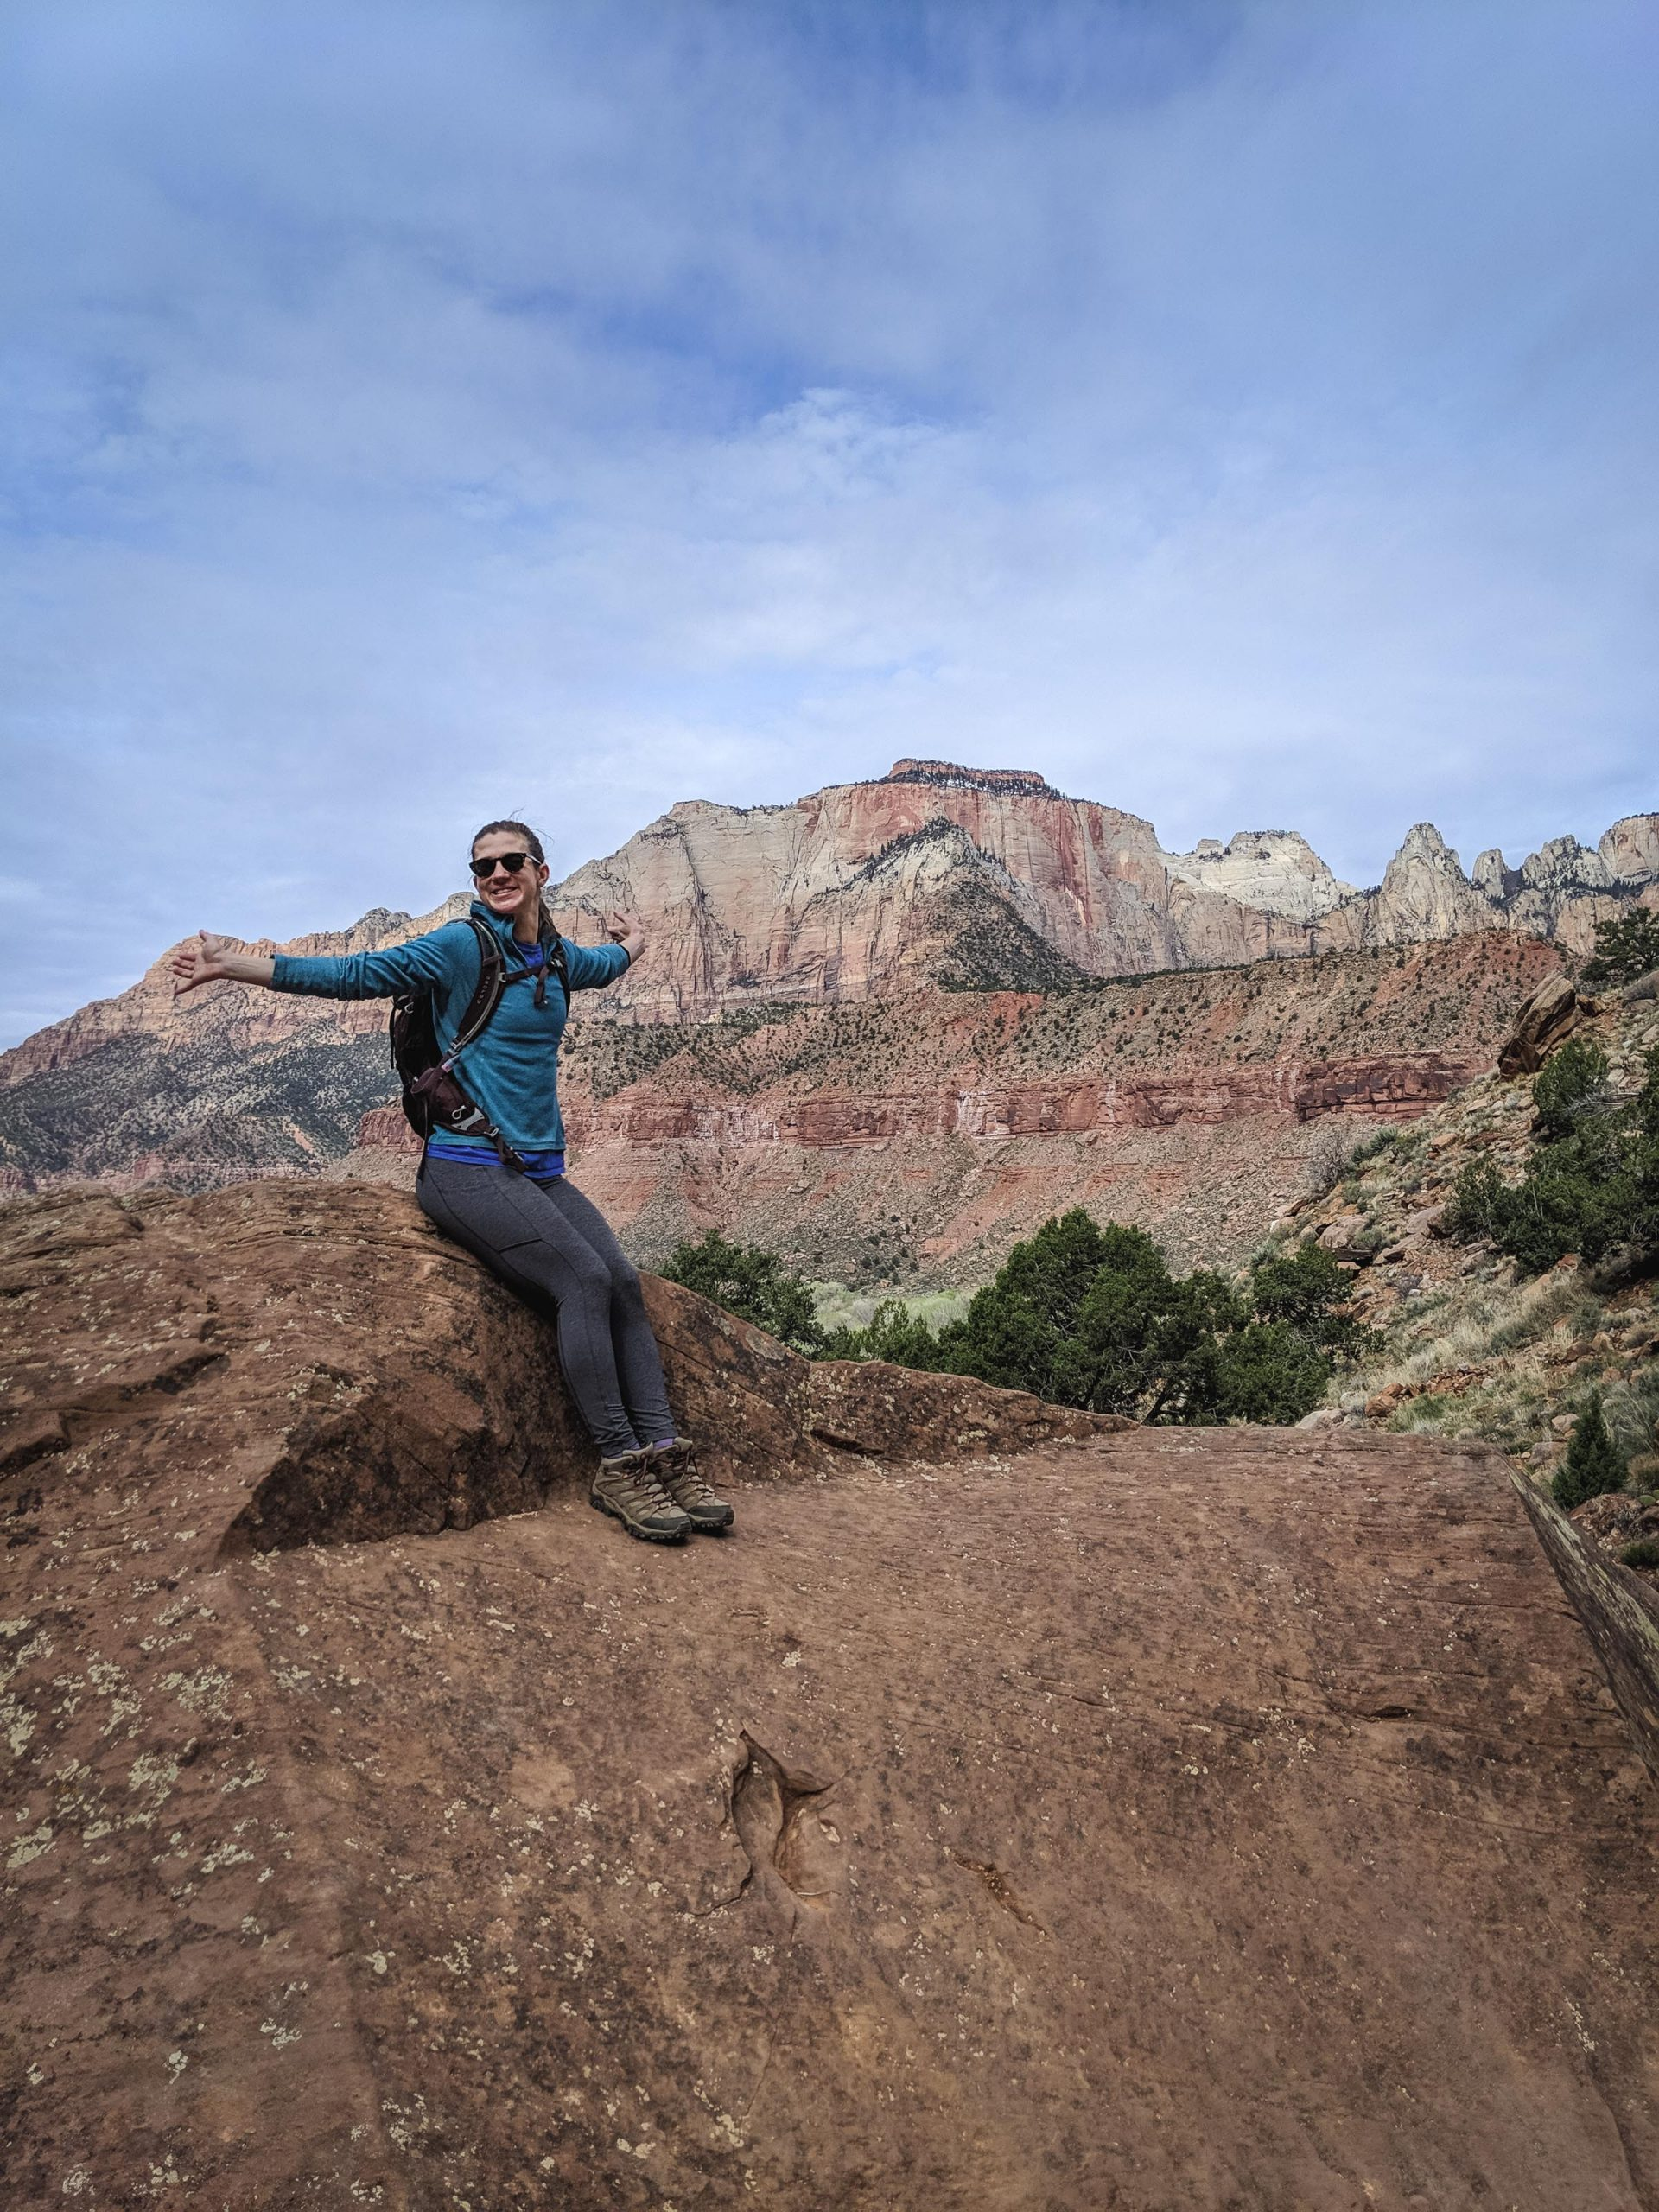 The watchman trail in Zion National Park | Go Messy or Go Hungry